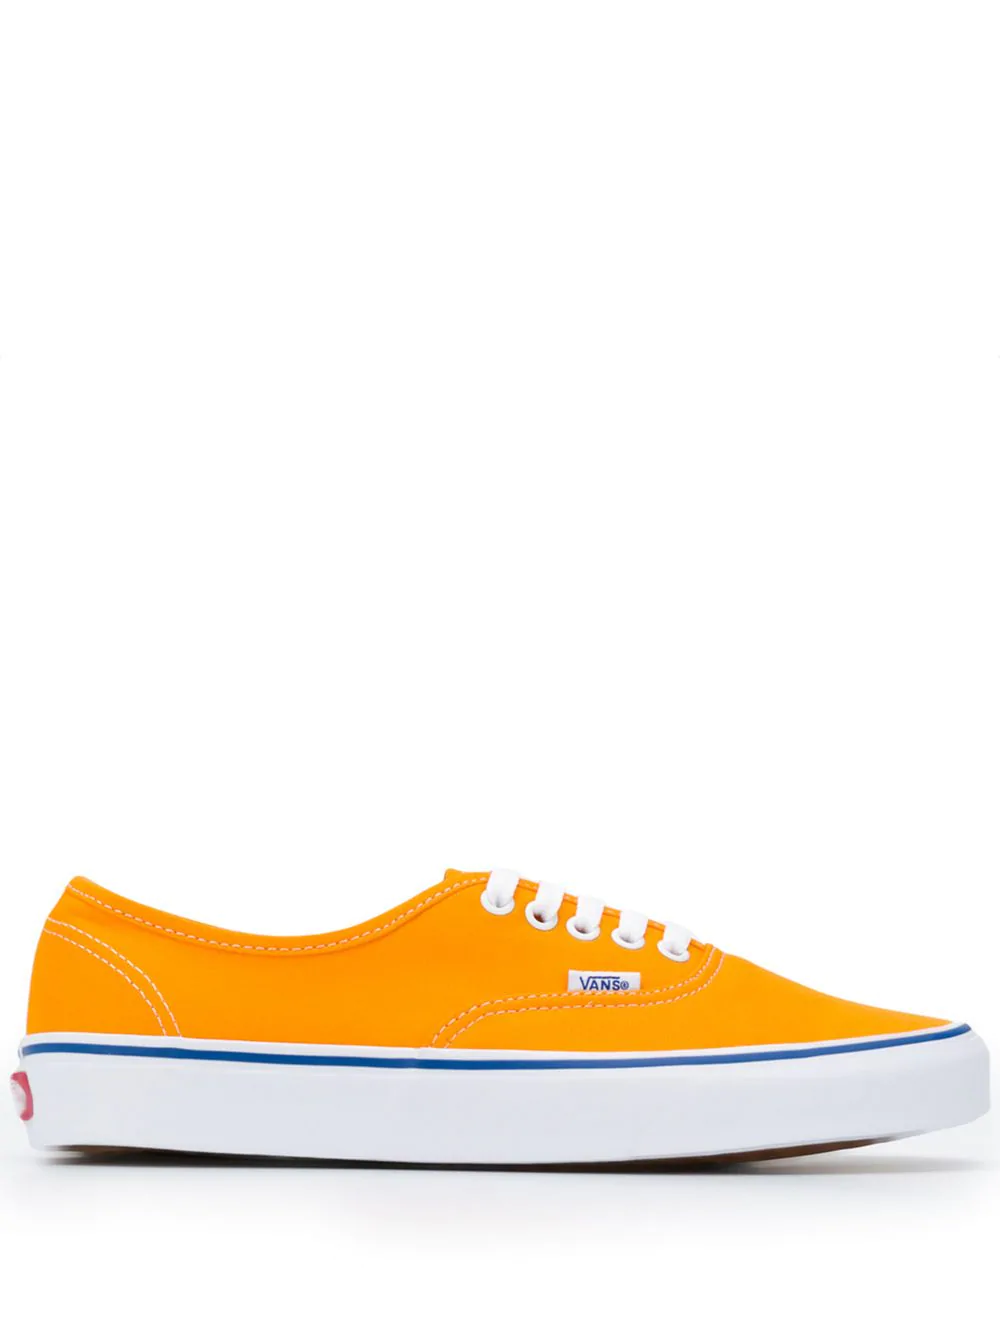 6382701fac13b5 Yellow canvas Authentic Lo Pro sneakers from Vans featuring an almond toe